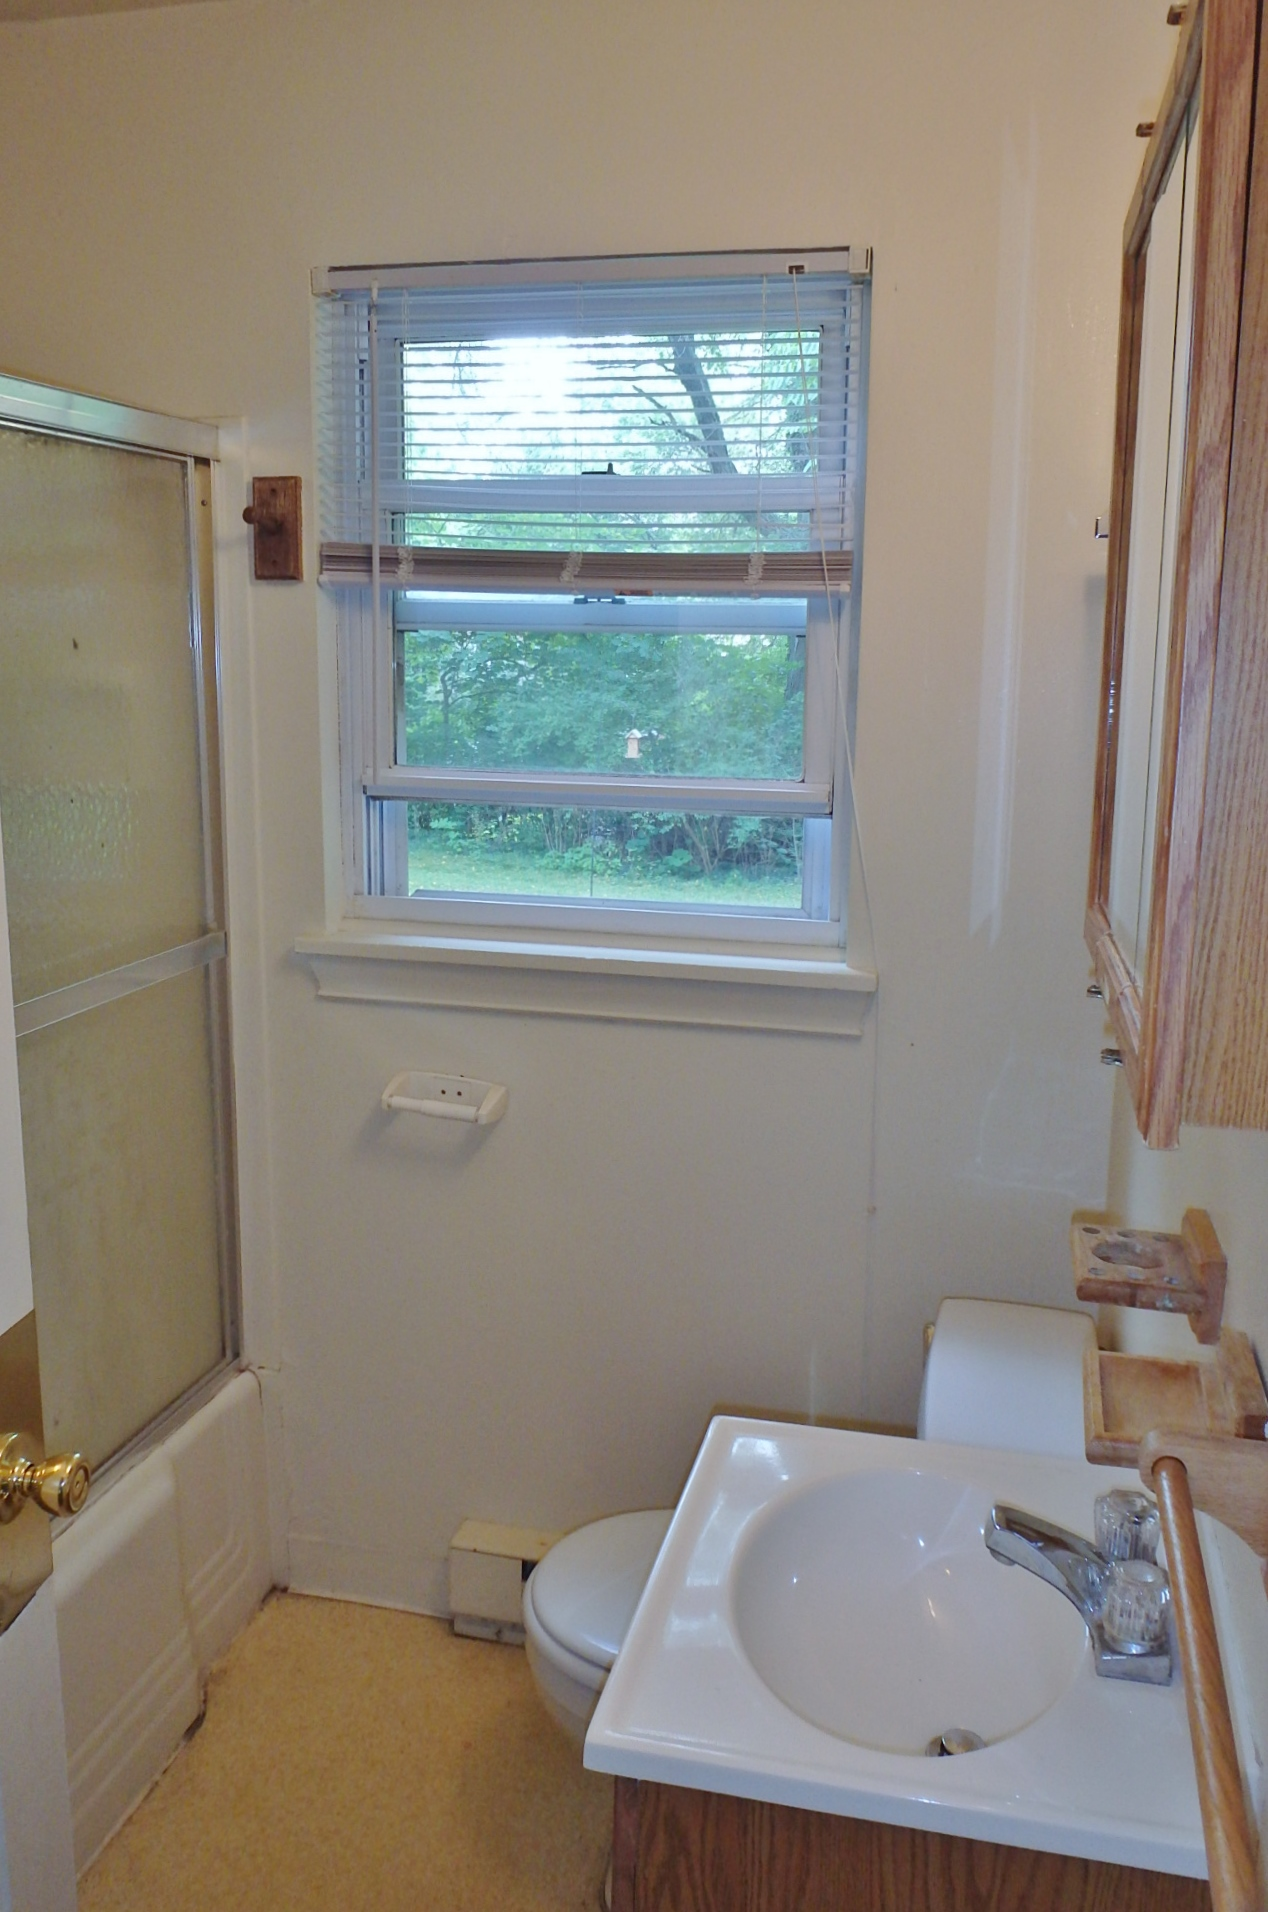 Bathroom at 1007 N. Atherton Street in State College, PA